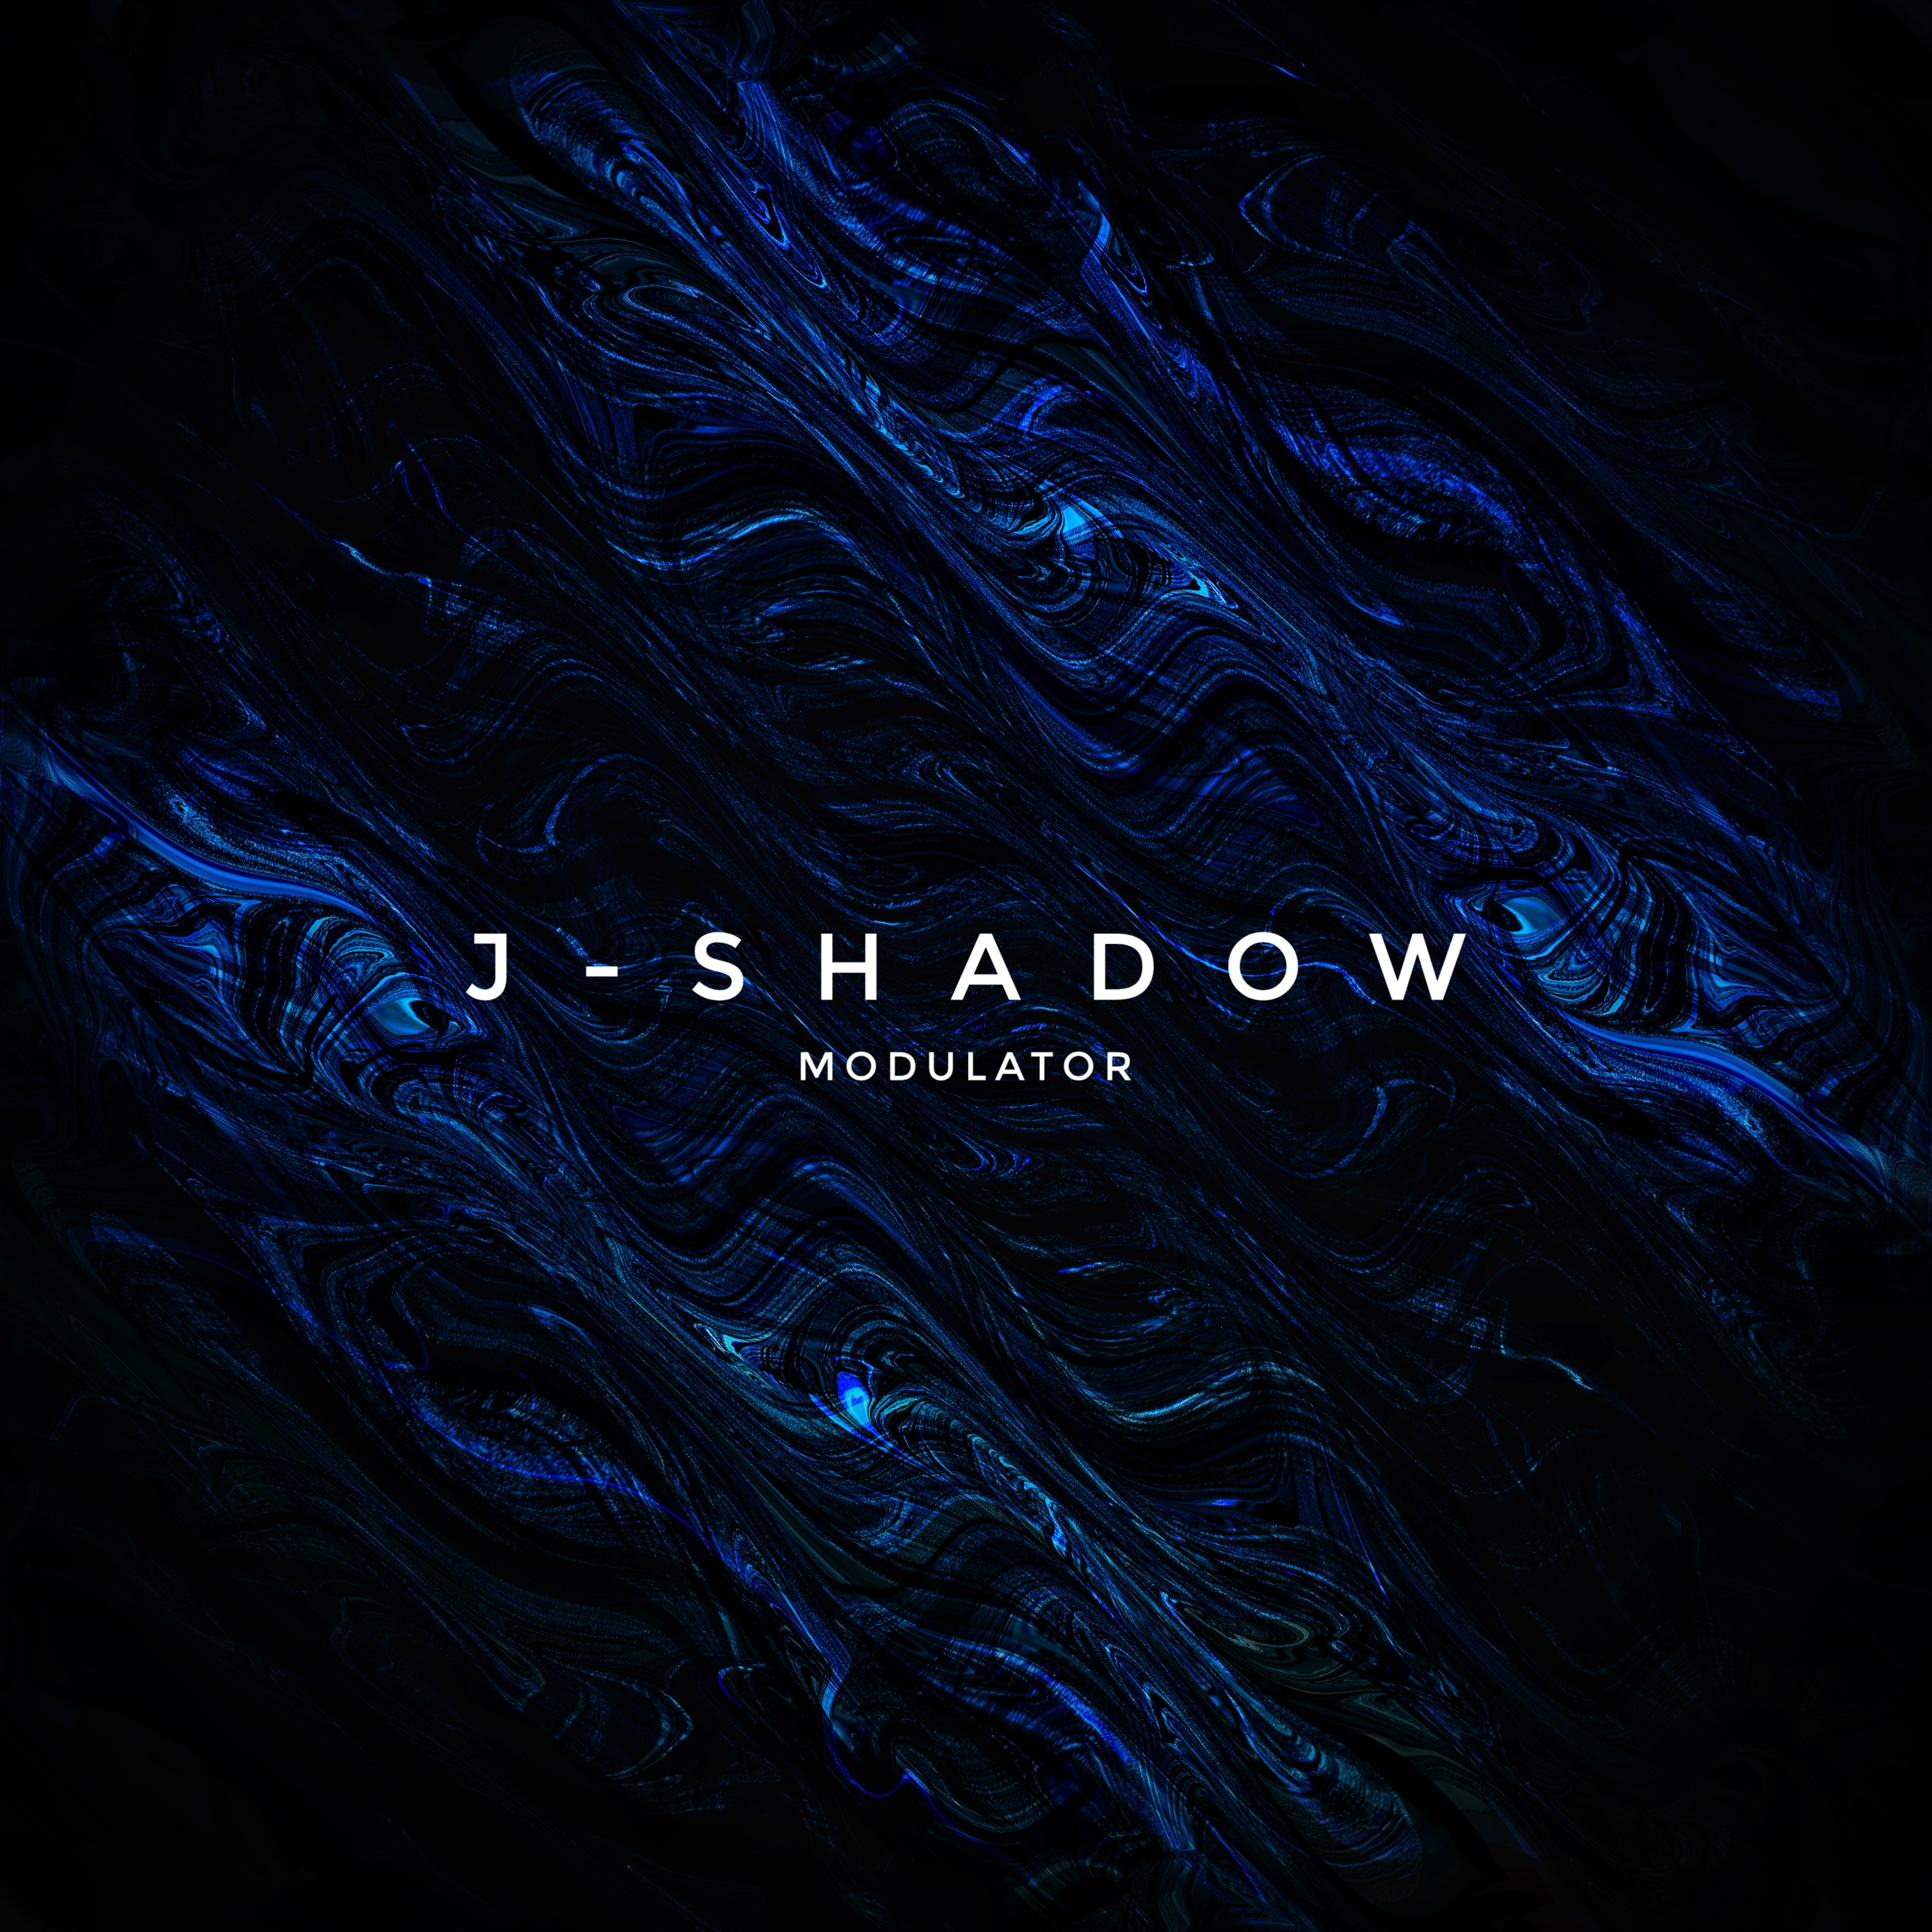 SD023 J-Shadow Modulator Artwork